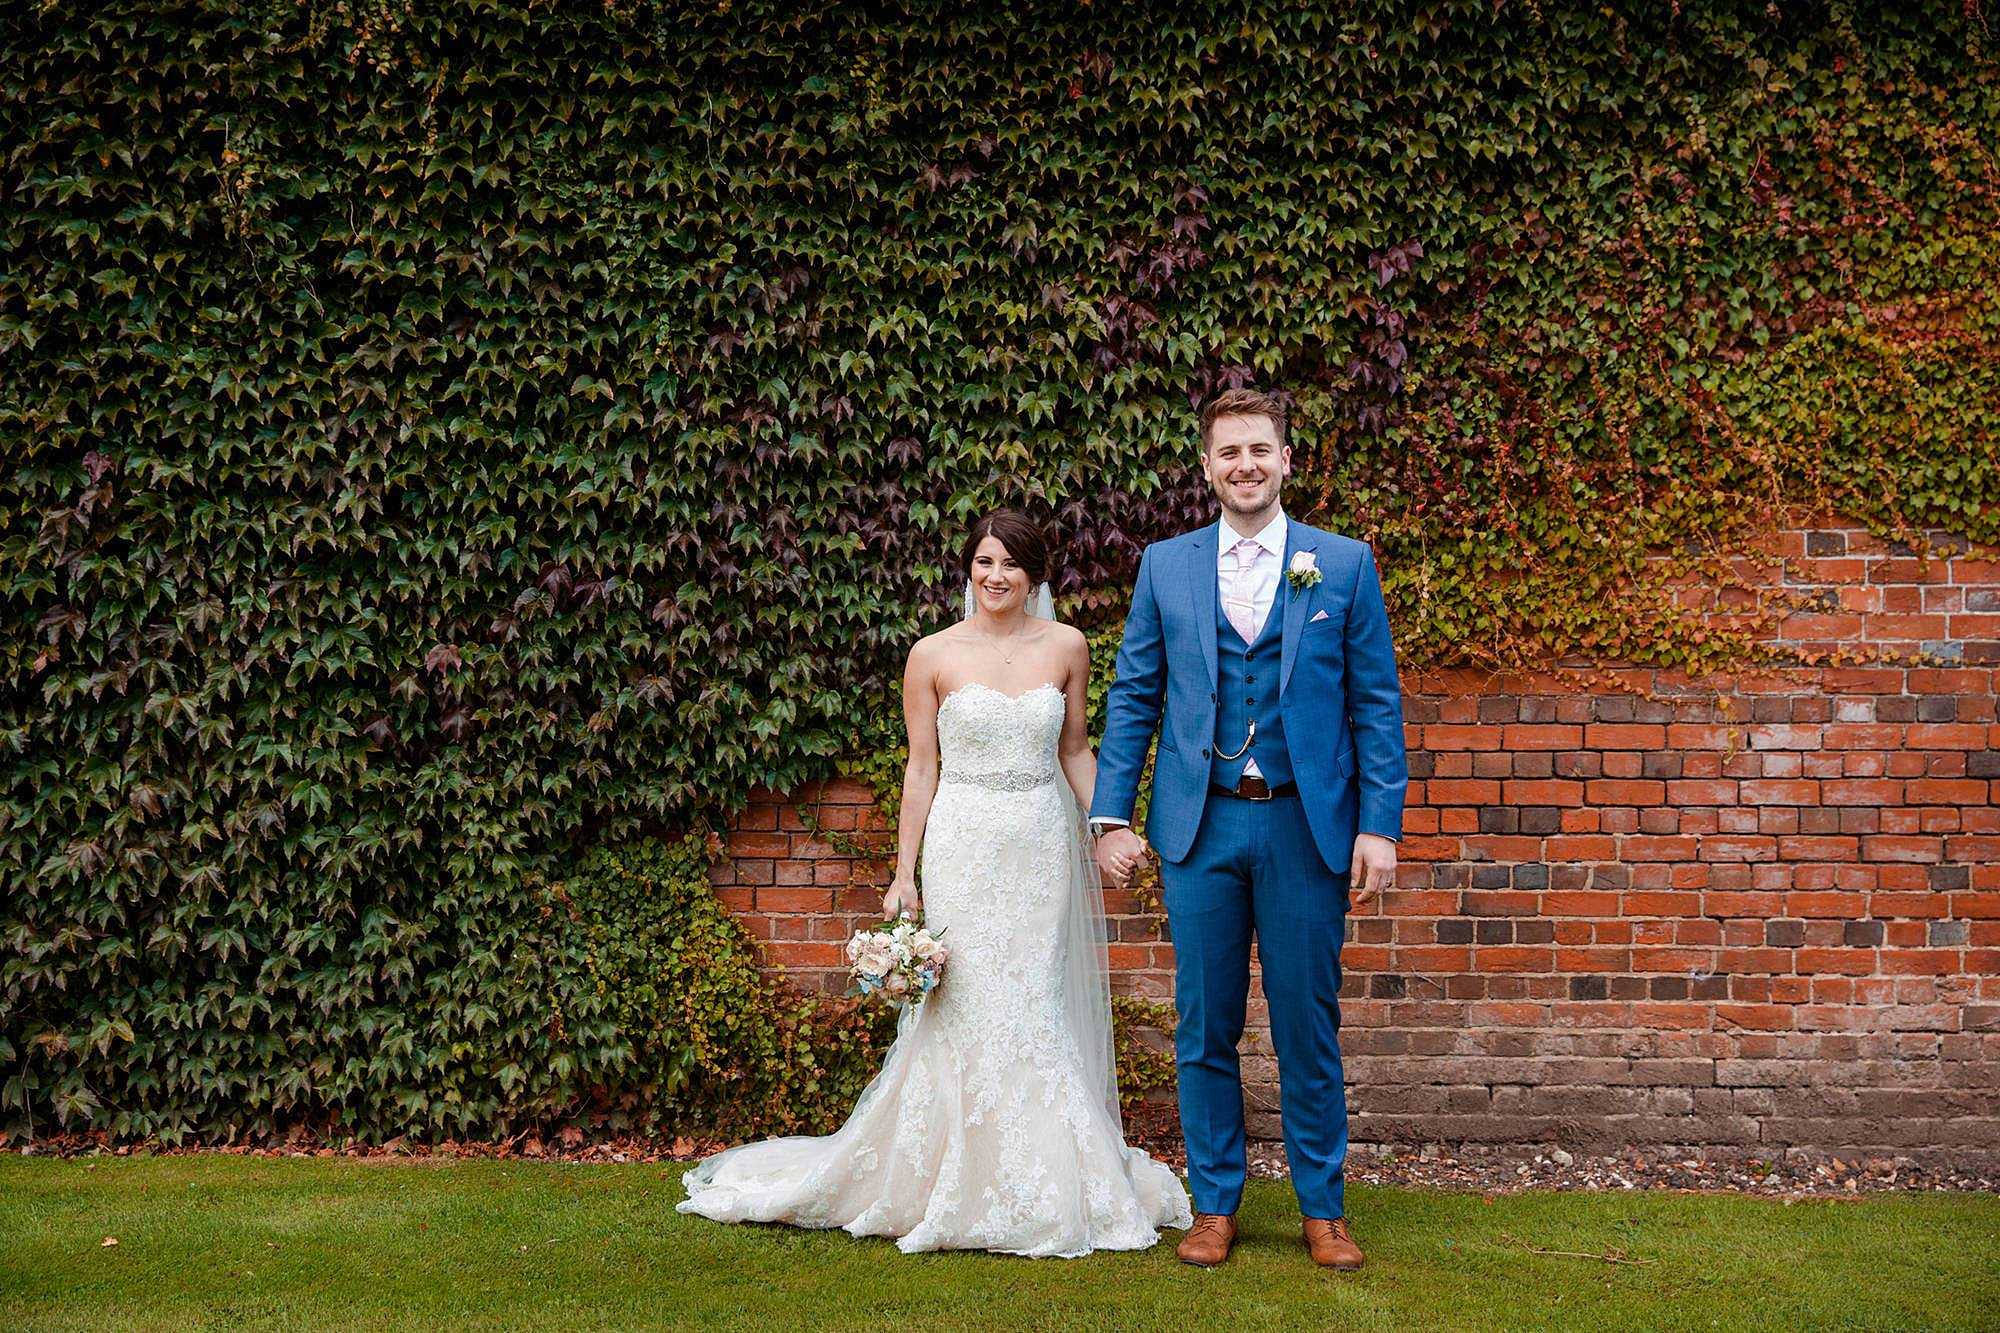 Lillibrooke Manor wedding bride and groom laugh together by wall